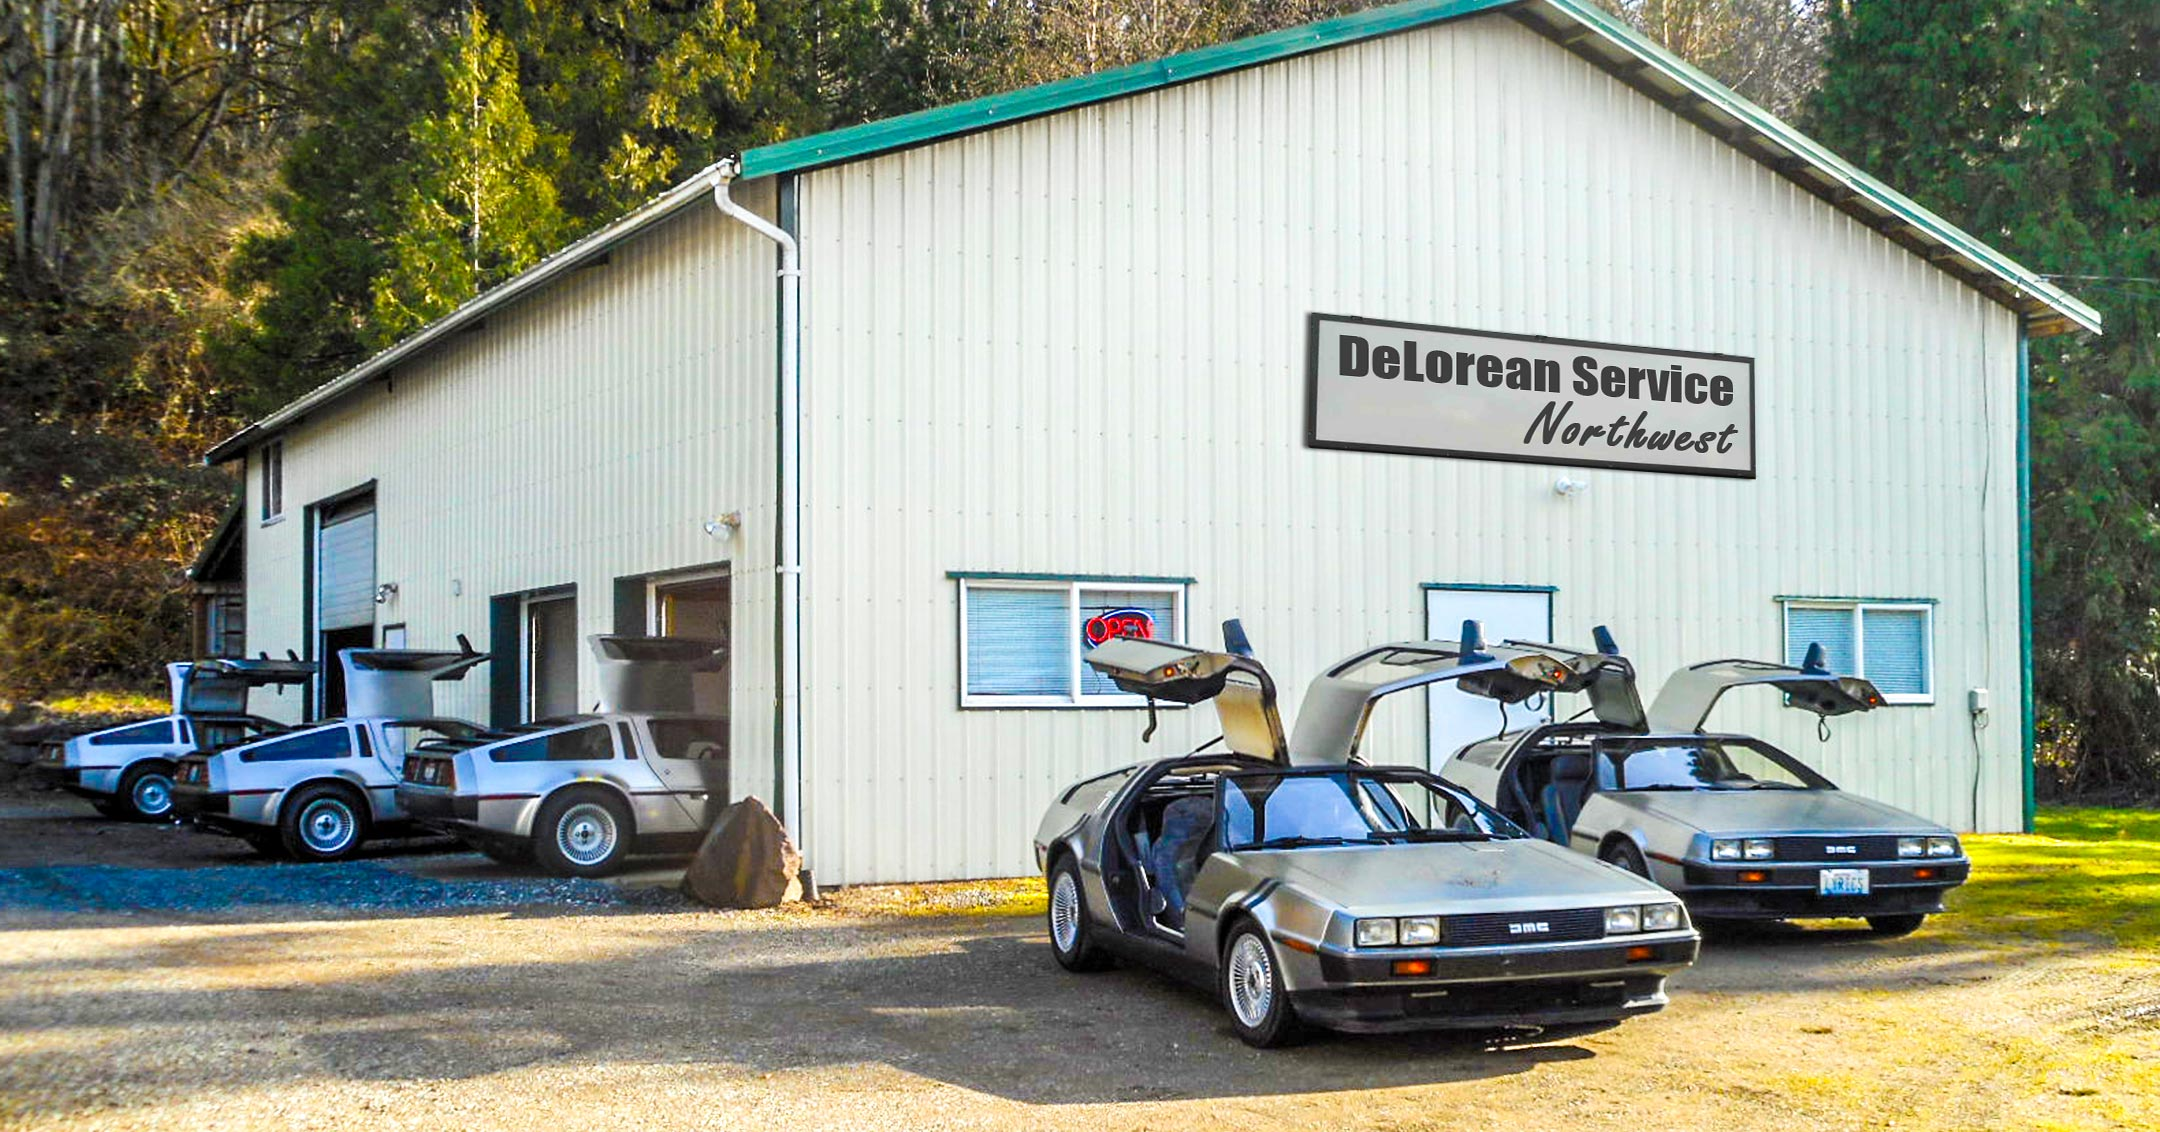 DeLorean Service Northwest